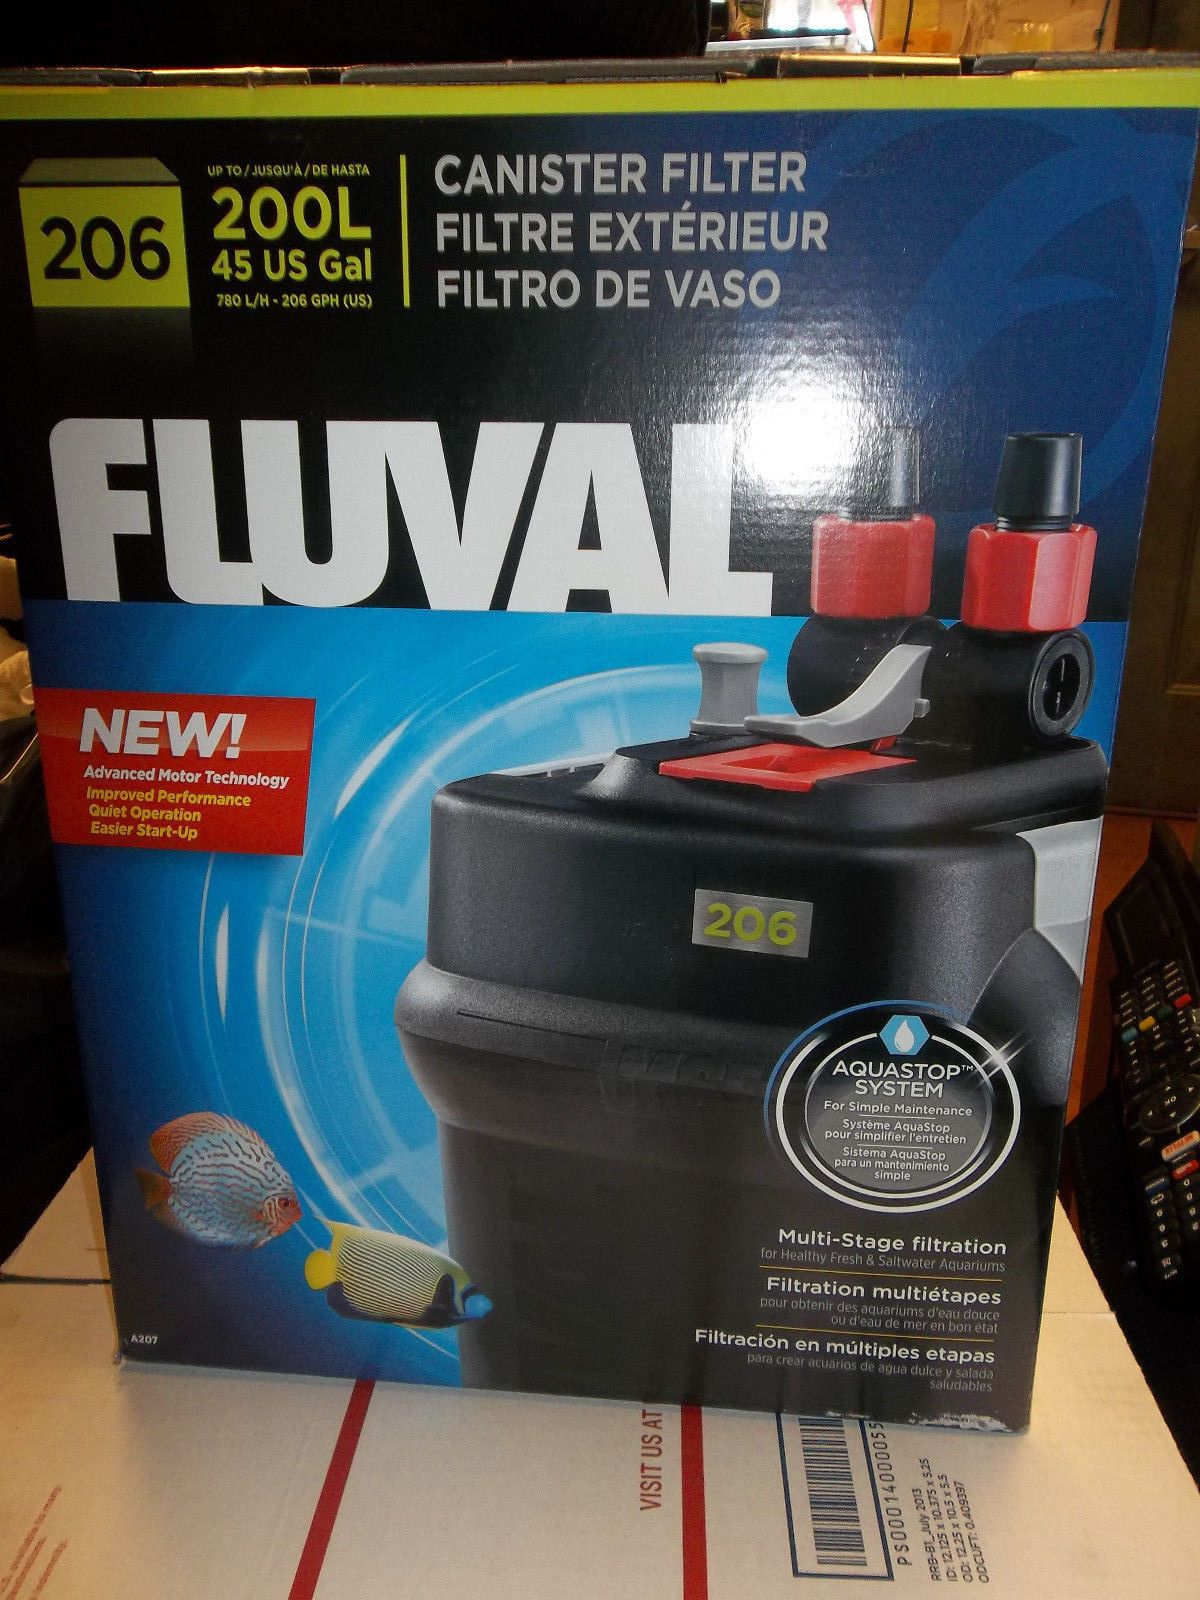 Animals Fish And Aquariums New Fluval 206 200L 45 Us Gal Canister